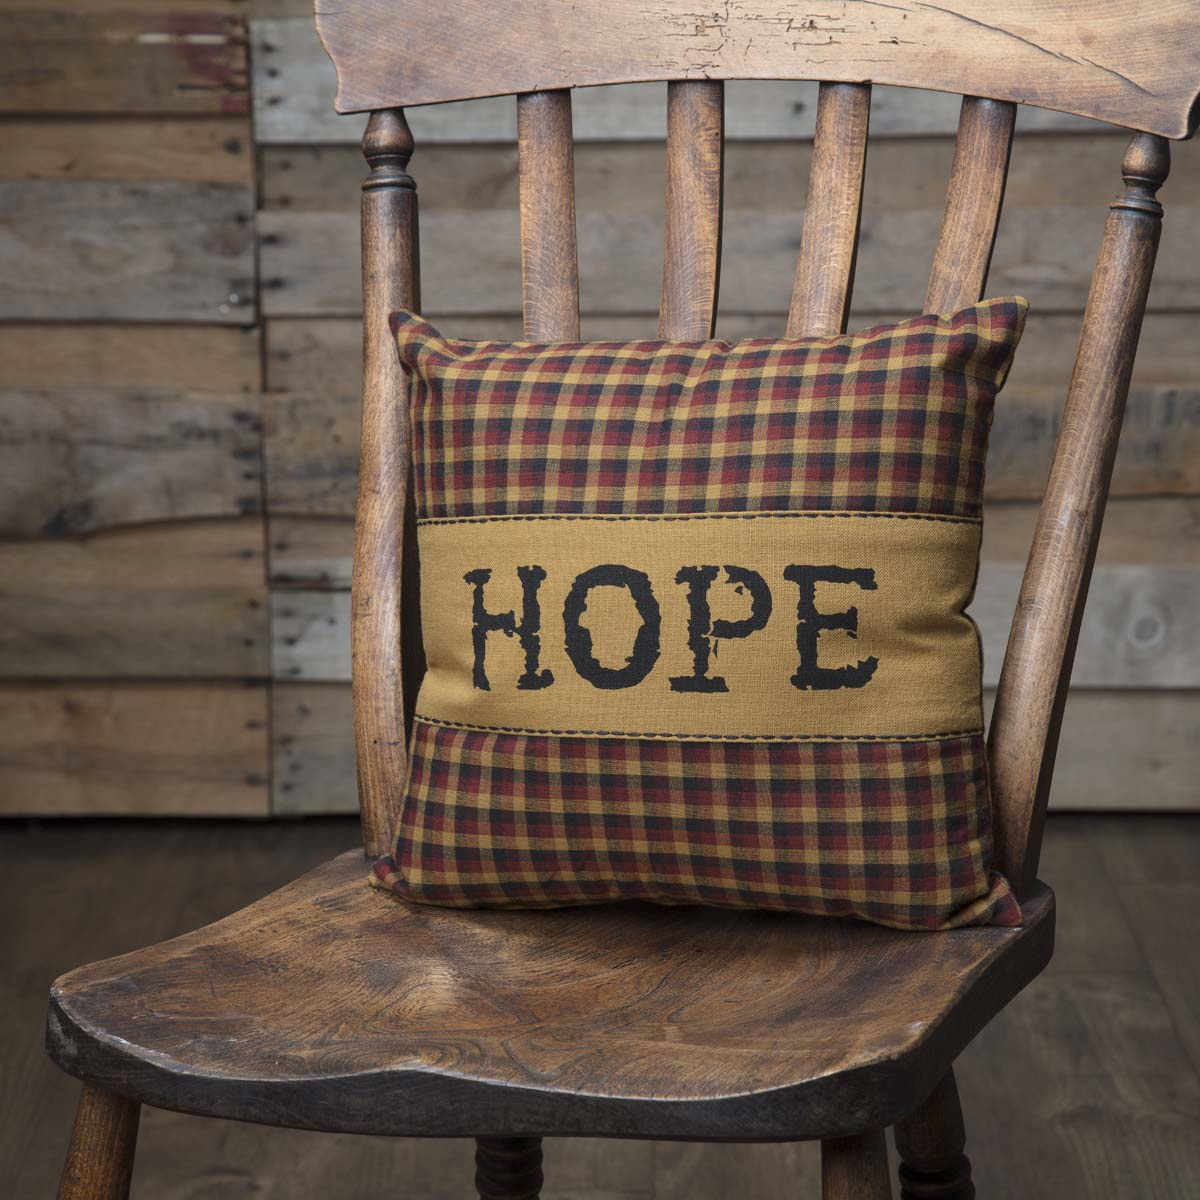 Heritage Farms Hope Pillow 12x12 - Woodrol